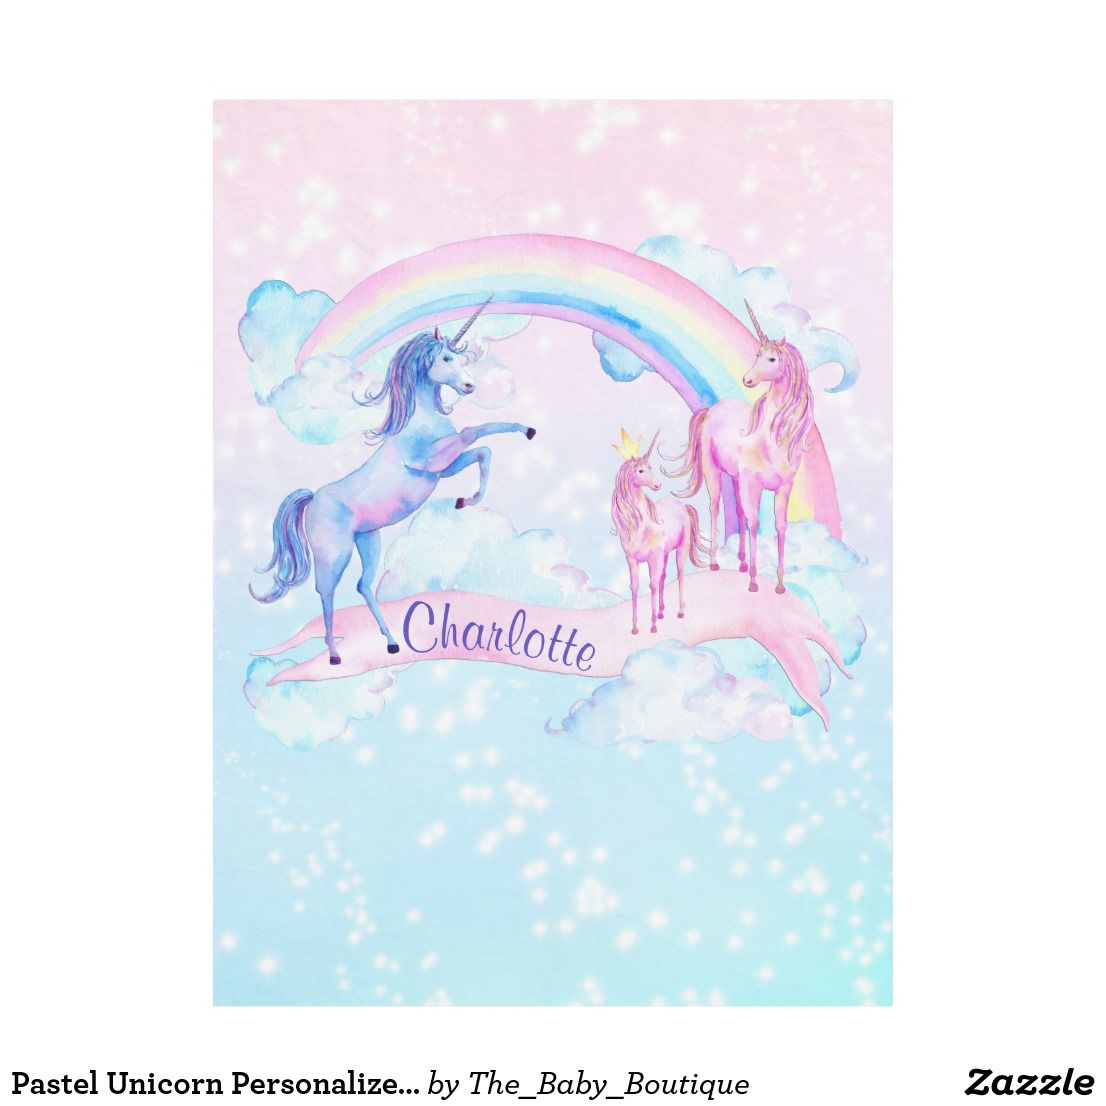 c19dda787c Pastel Unicorn Personalized Fleece Unicorn Blanket - rainbow